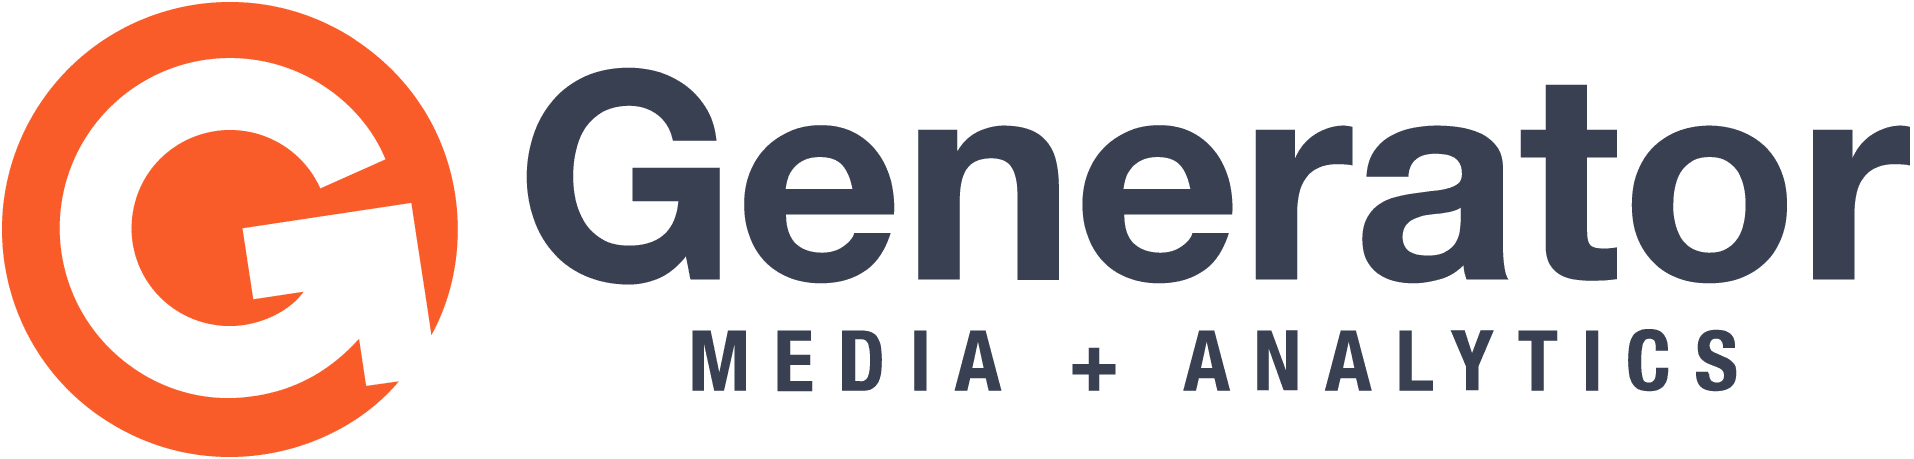 THERE'S A NEW BOURBON IN TOWN - Generator Media + Analytics